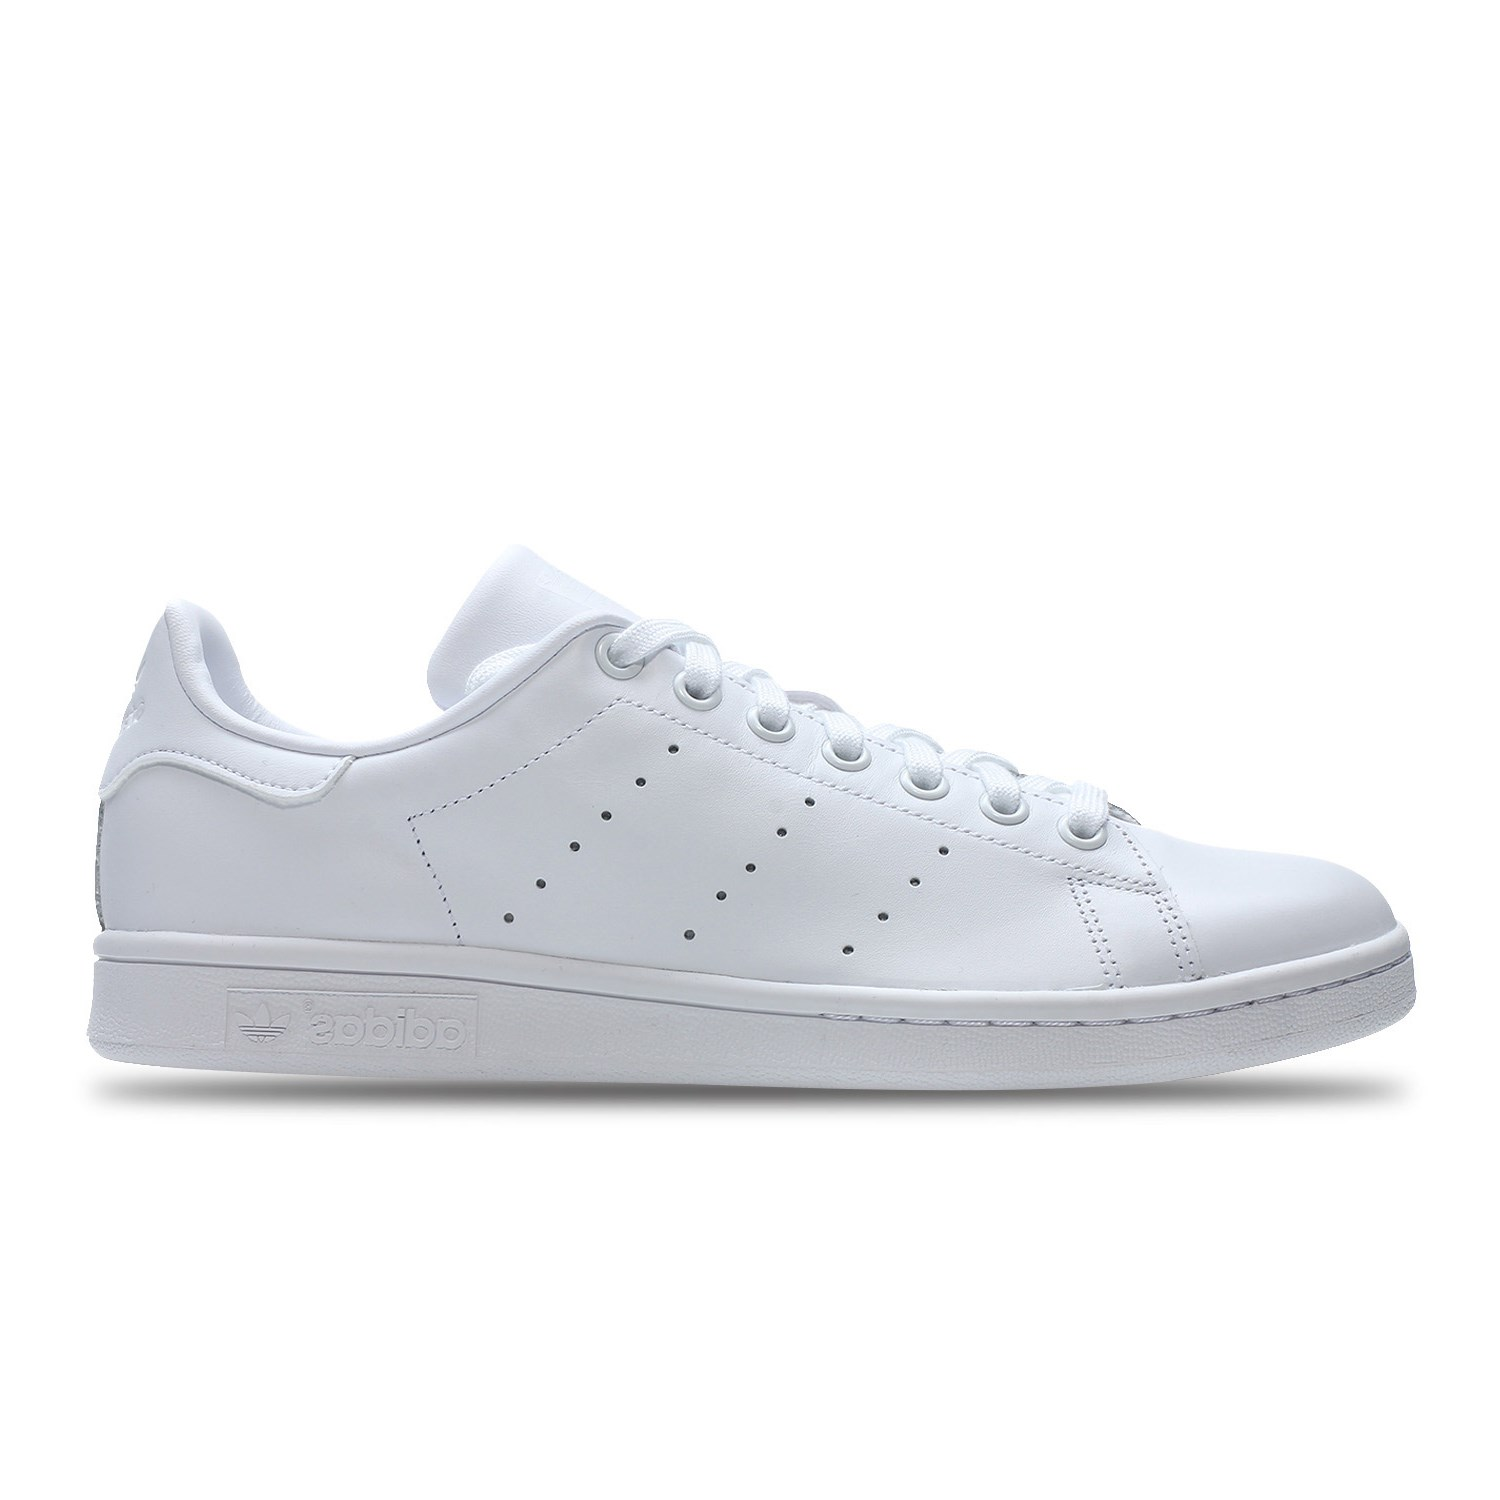 Adidas trefoil men's shoes Smith white shoes 2017 new white shoes S75104